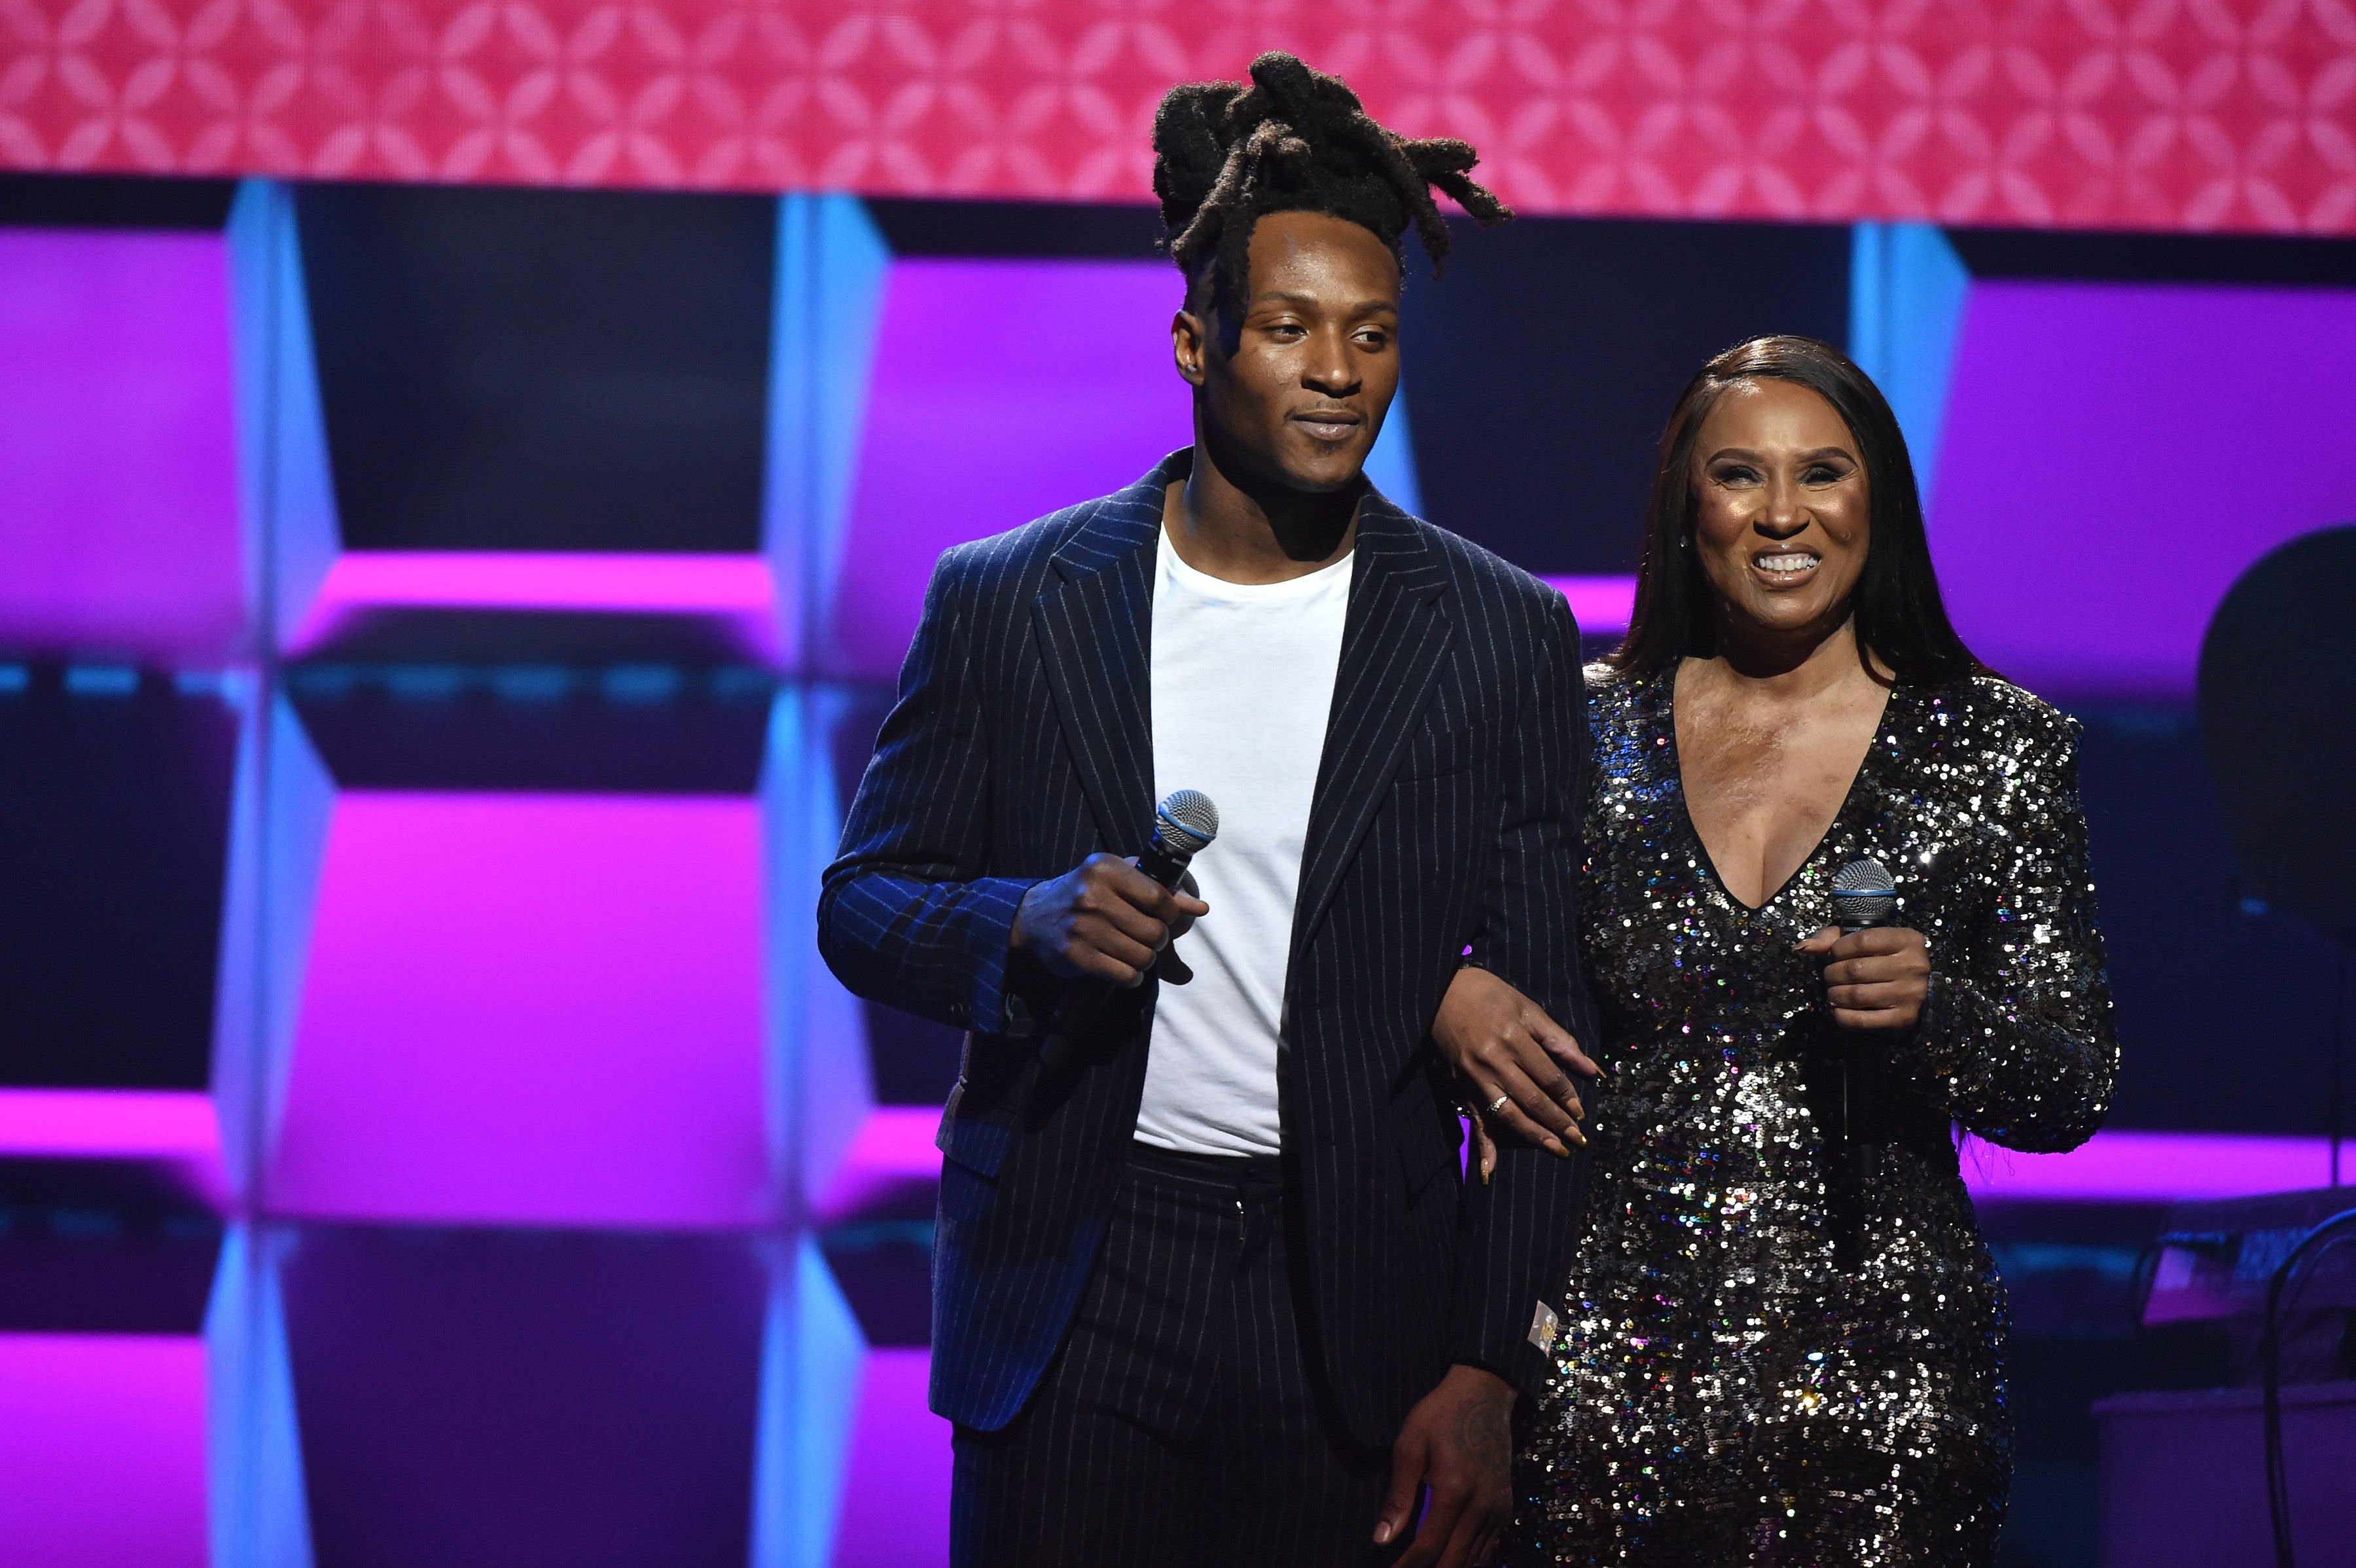 DeAndre Hopkins and Sabrina Greenlee onstage during the BET Super Bowl Gospel Celebration in January 2020 in Miami, Florida | Source: Getty Images